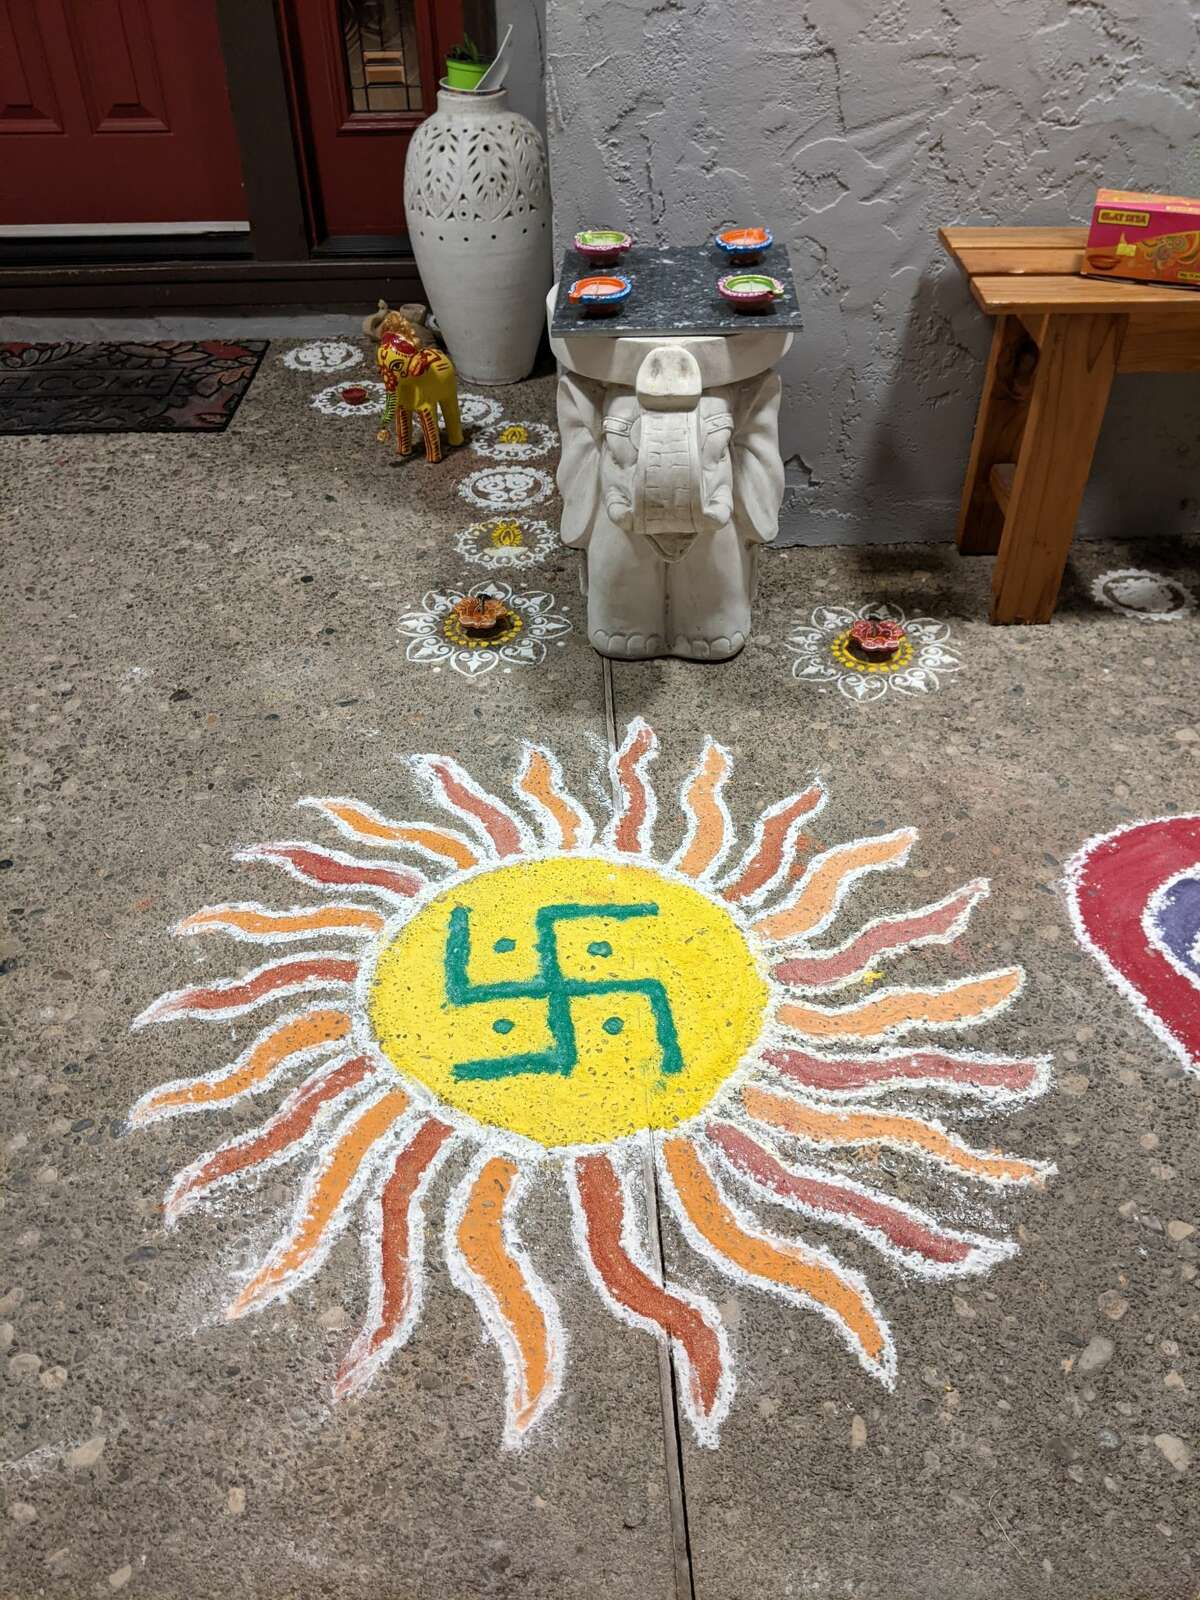 A Hindu swastika decorates the New York patio of a home where a Hindu wedding ceremony unfolds. The curving swastika with its rounded corners is an ancient symbol of good fortune and often used on wedding invitations and gift wrap.